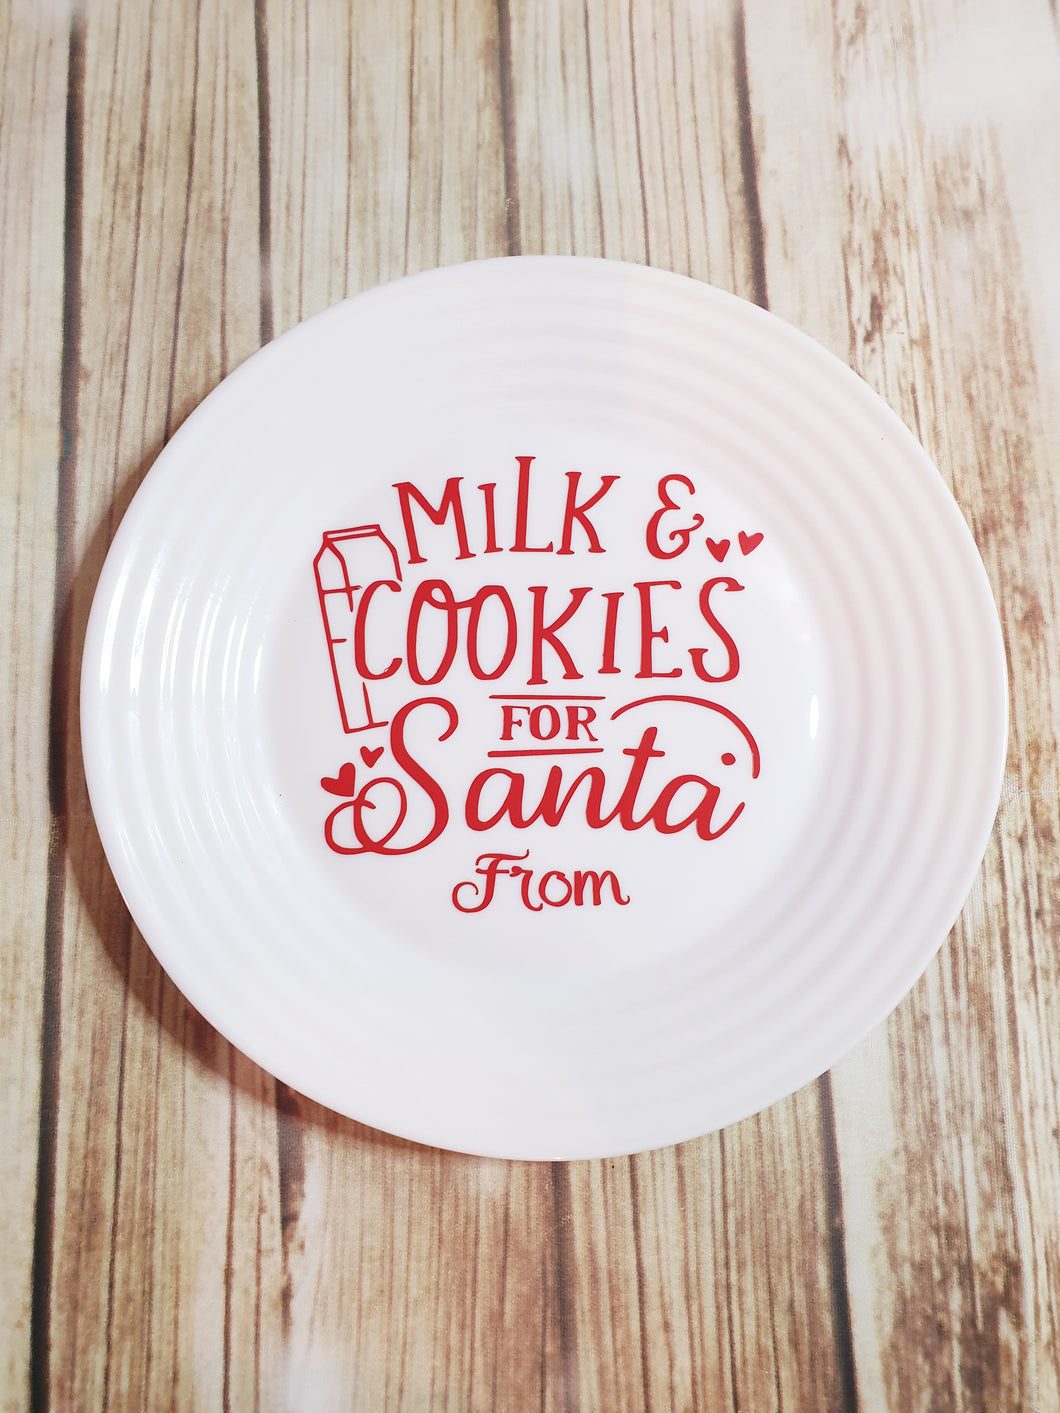 Cookies And Milk For Santa Glass Plate